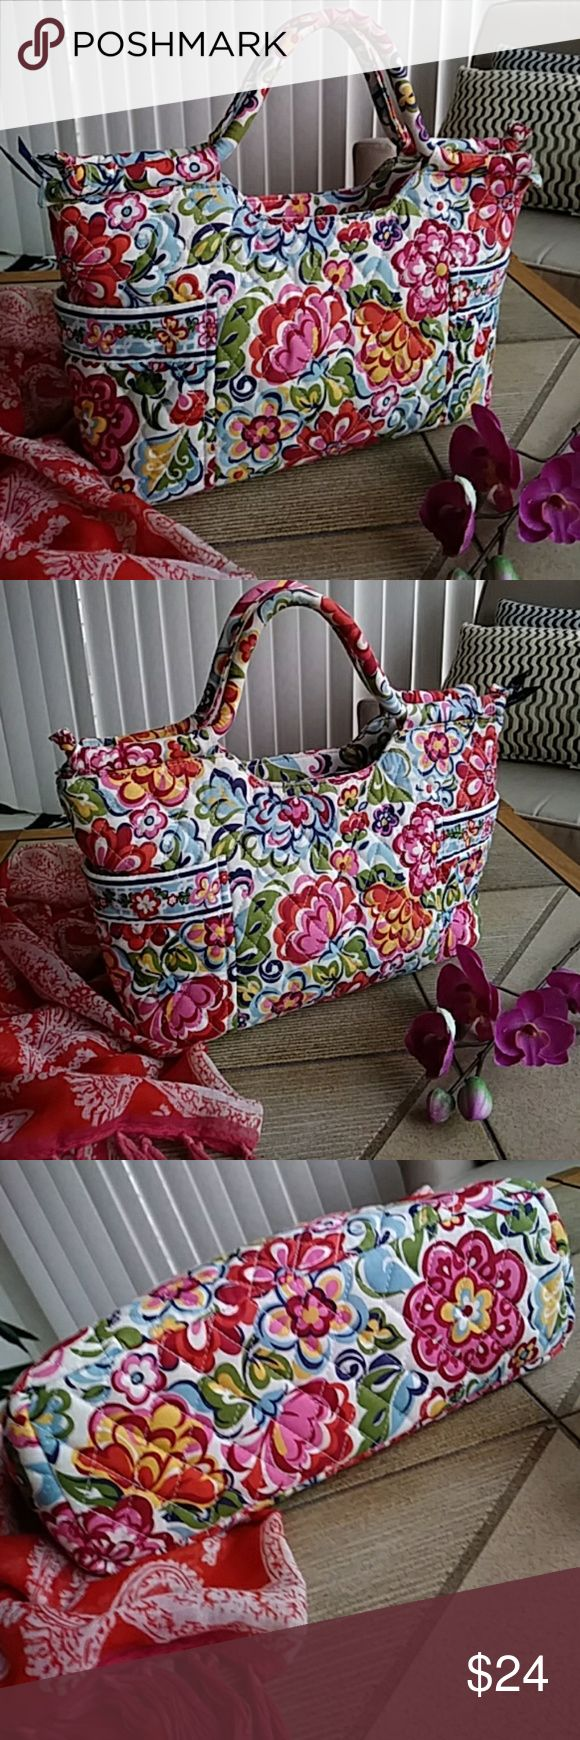 """Just in! VERA BRADLEY Hope Garden Gabby Bag VERA BRADLEY Hope Garden Gabby Hand Bag Purse. Retired. Features: zip top closure two exterior vertical pockets at sides, firm bottom (cardboard removable for laundering), interior zip pocket and three open organizer pockets. Preloved, EUC. 14"""" x 12"""" (including handles) x 4""""  Pink, rose, blue, yellow, orange, green, white.  Floral, Abby, Cotton, Print Vera Bradley Bags Satchels"""